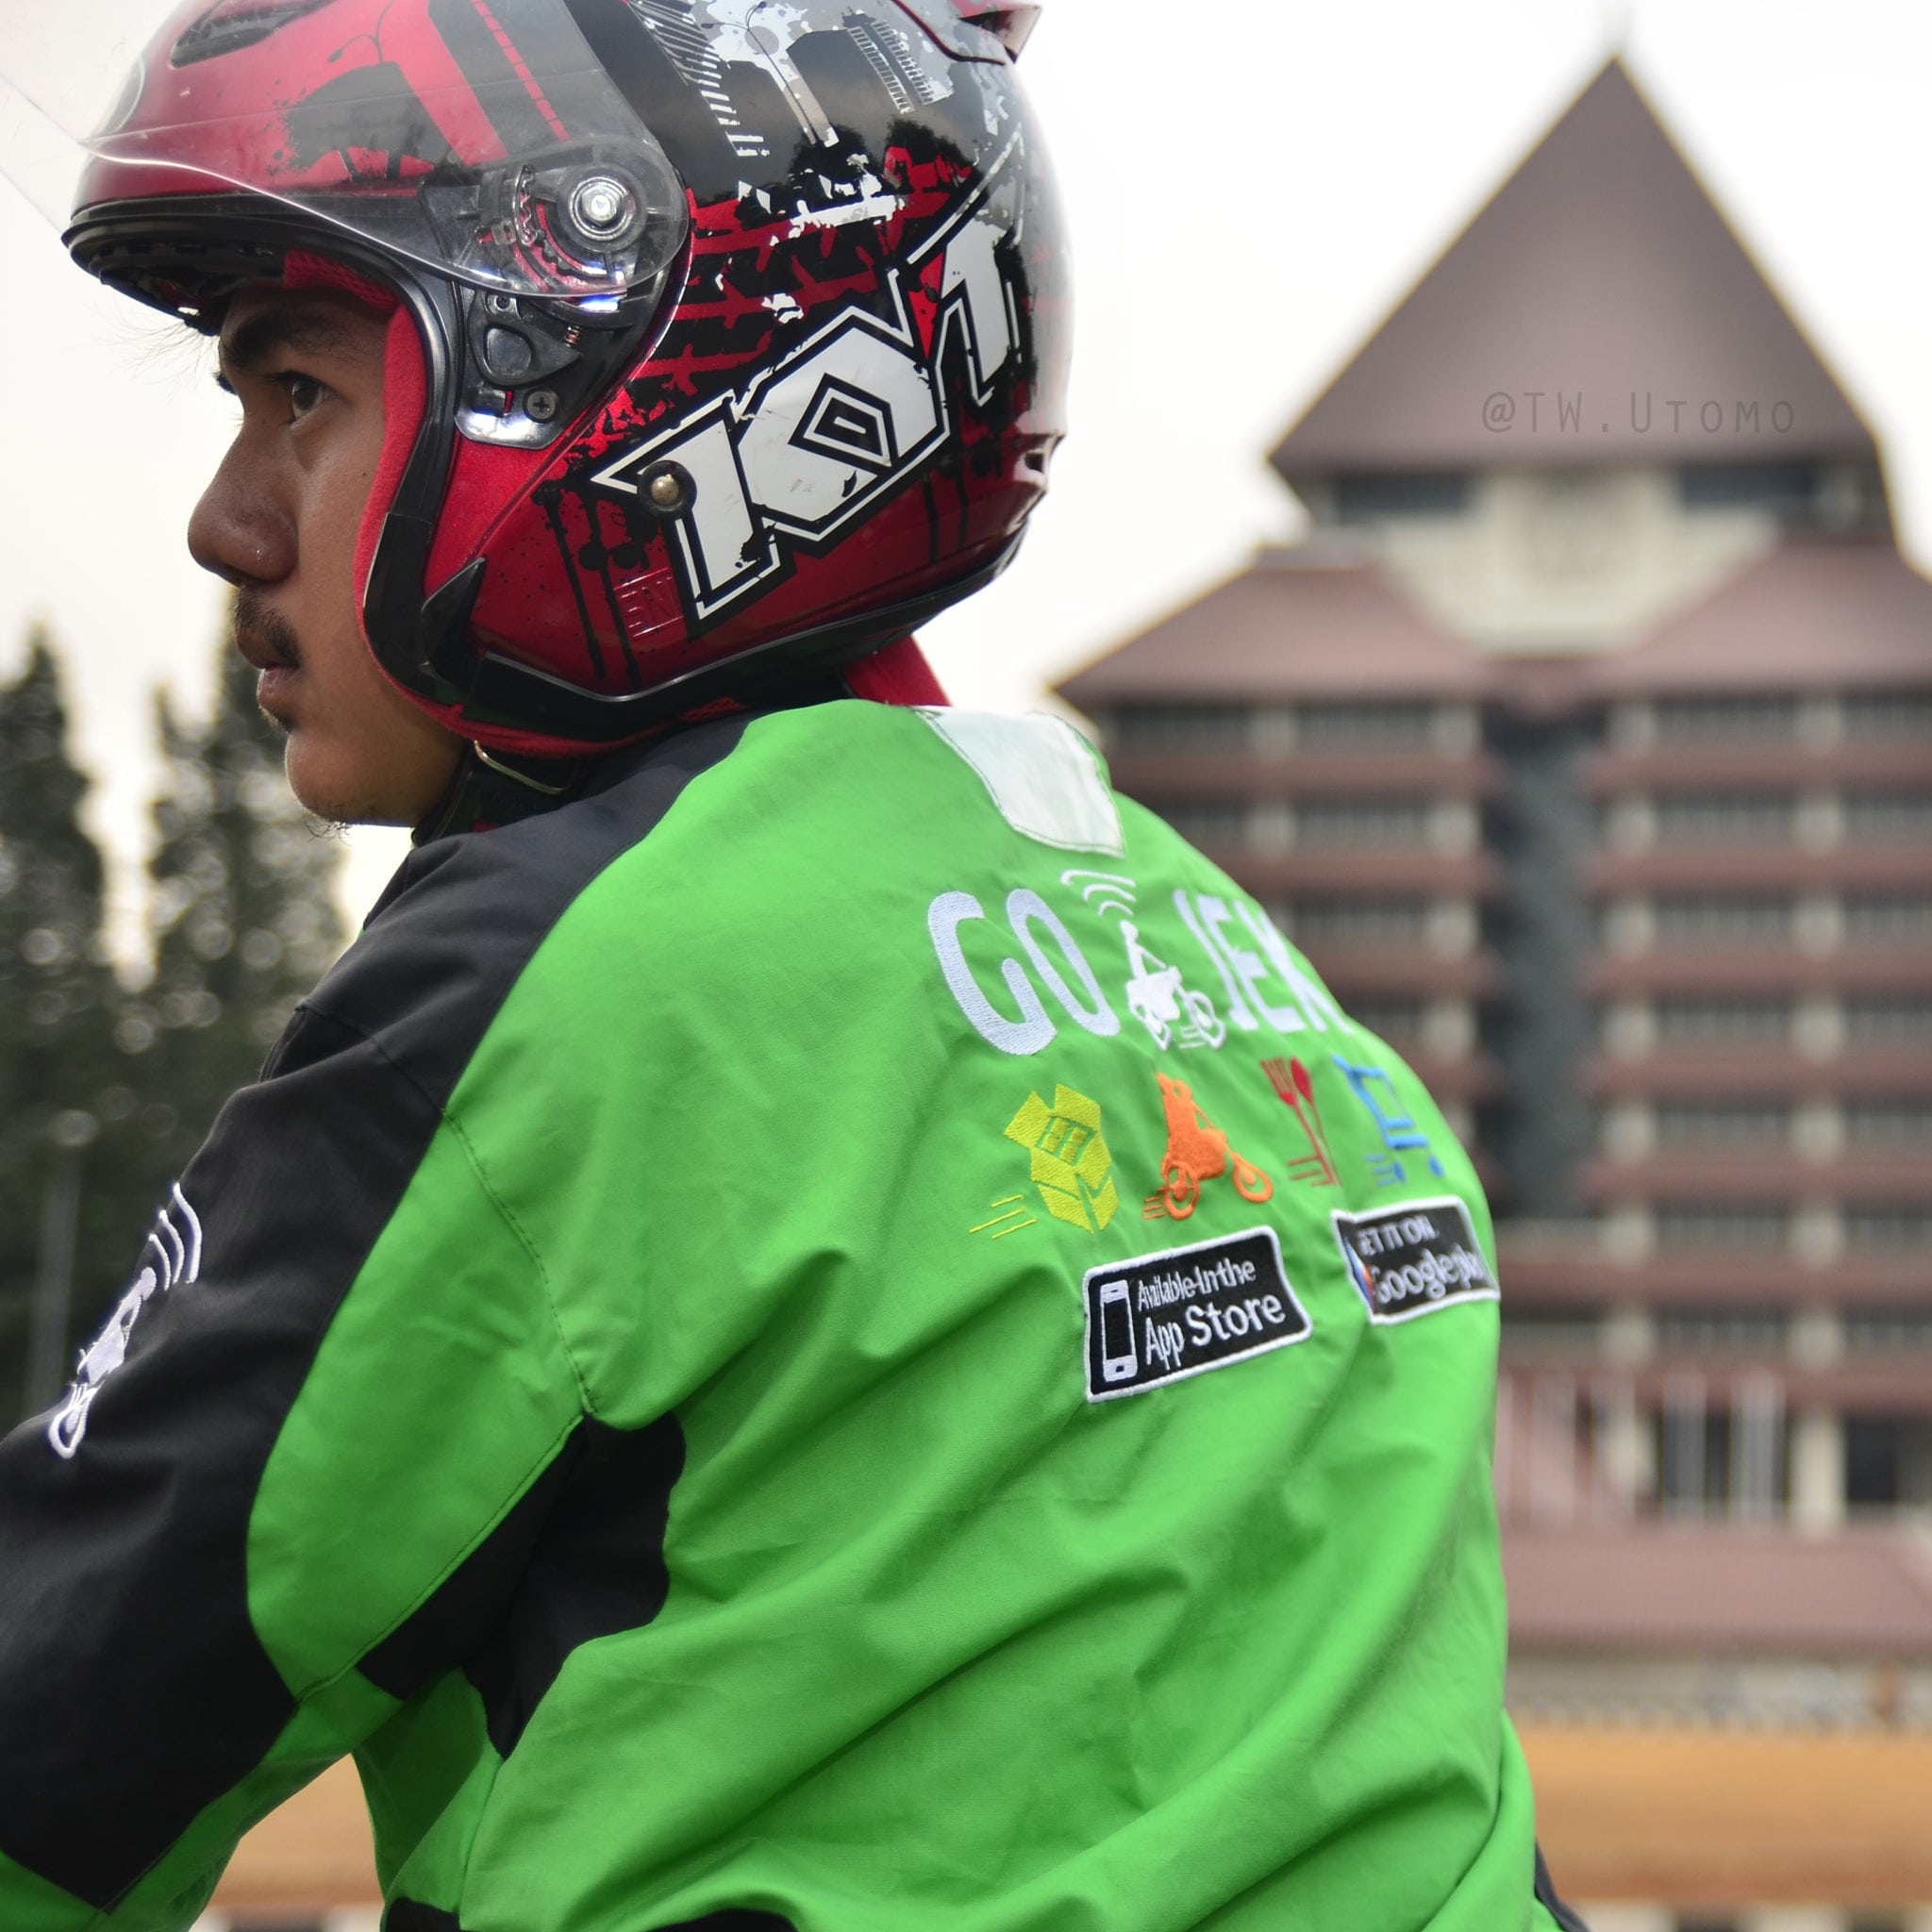 Go Jek: Go-Jek: What You Need To Know About This $5 Billion Ride